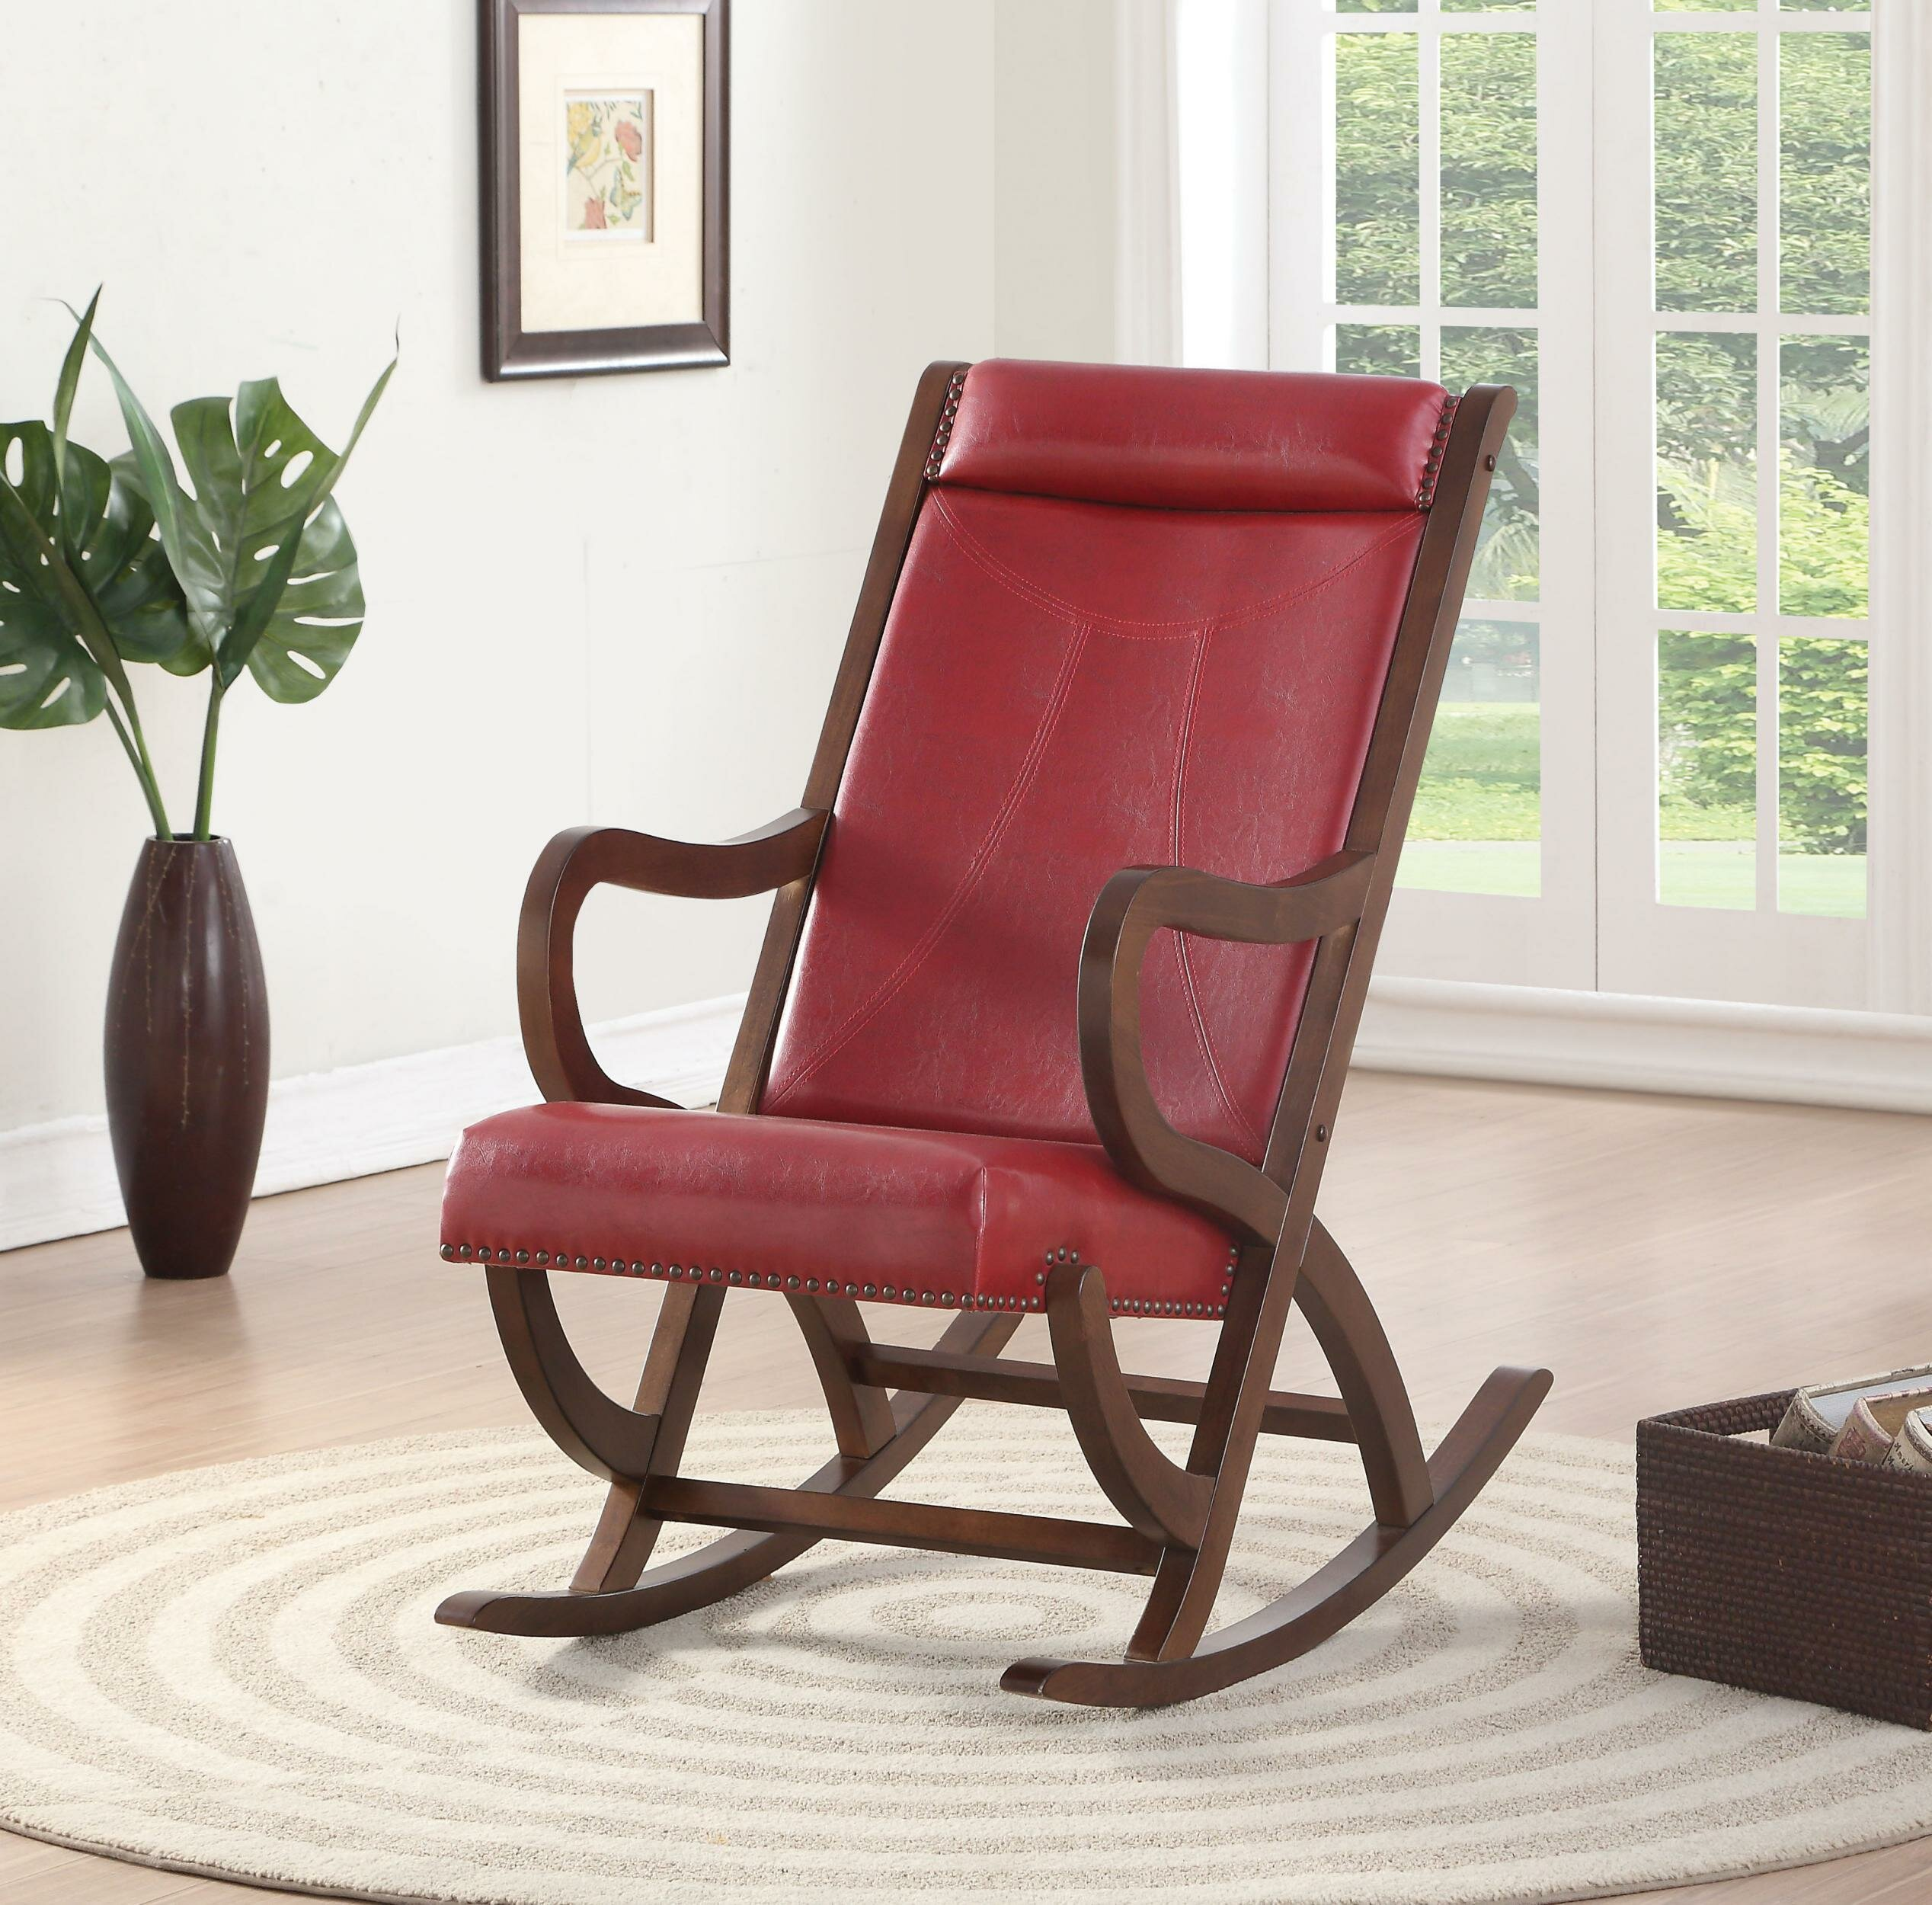 Miraculous Jadon Rocking Chair Ncnpc Chair Design For Home Ncnpcorg